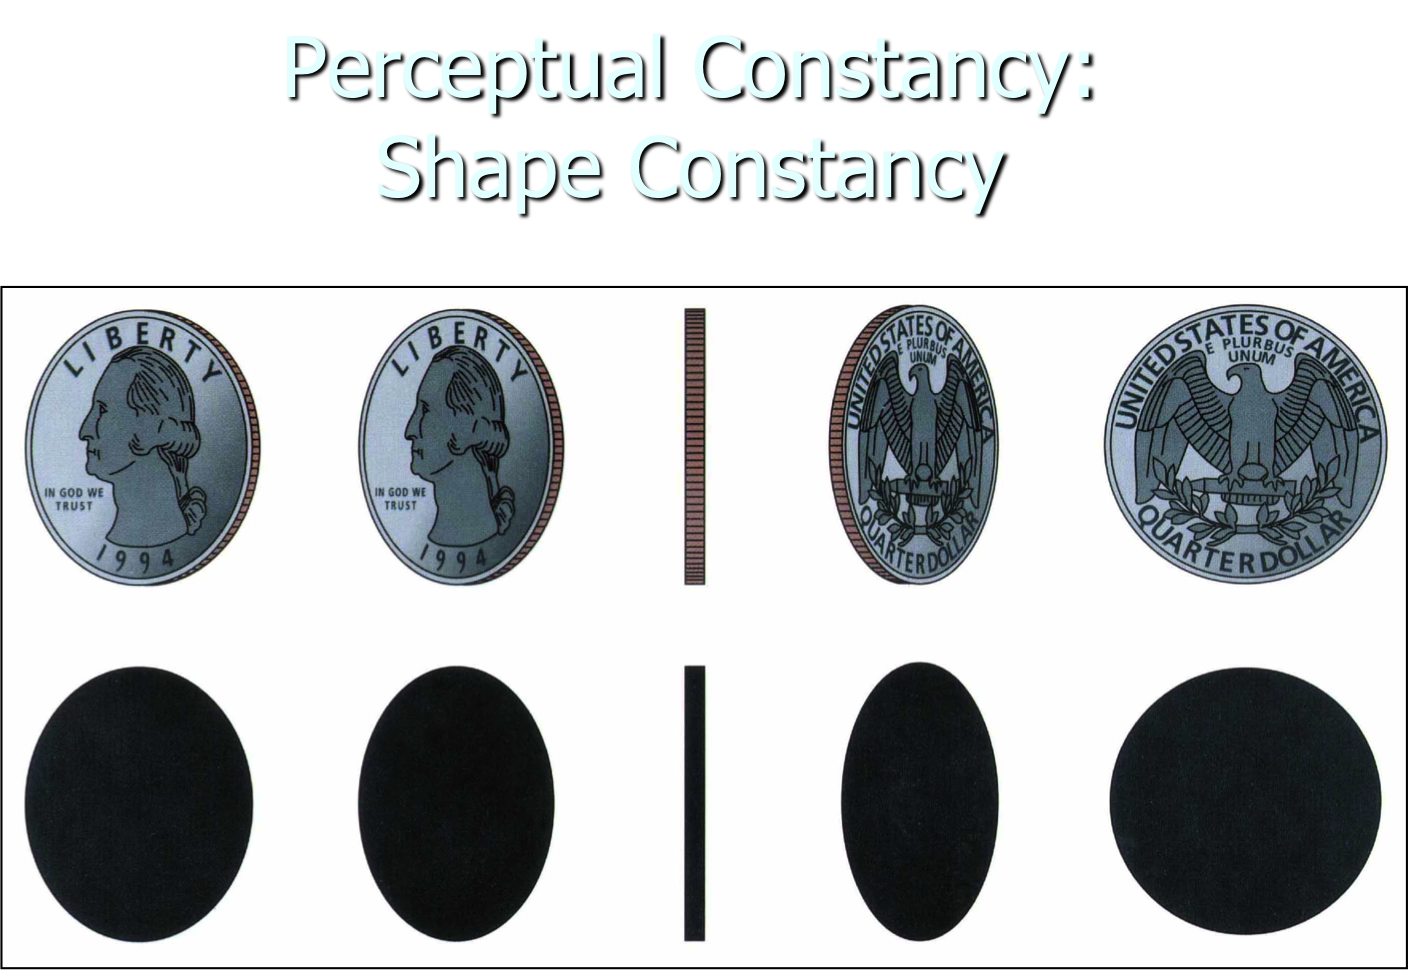 1BerryCarusoMitchell: Perceptual Constancies- Law of Shape